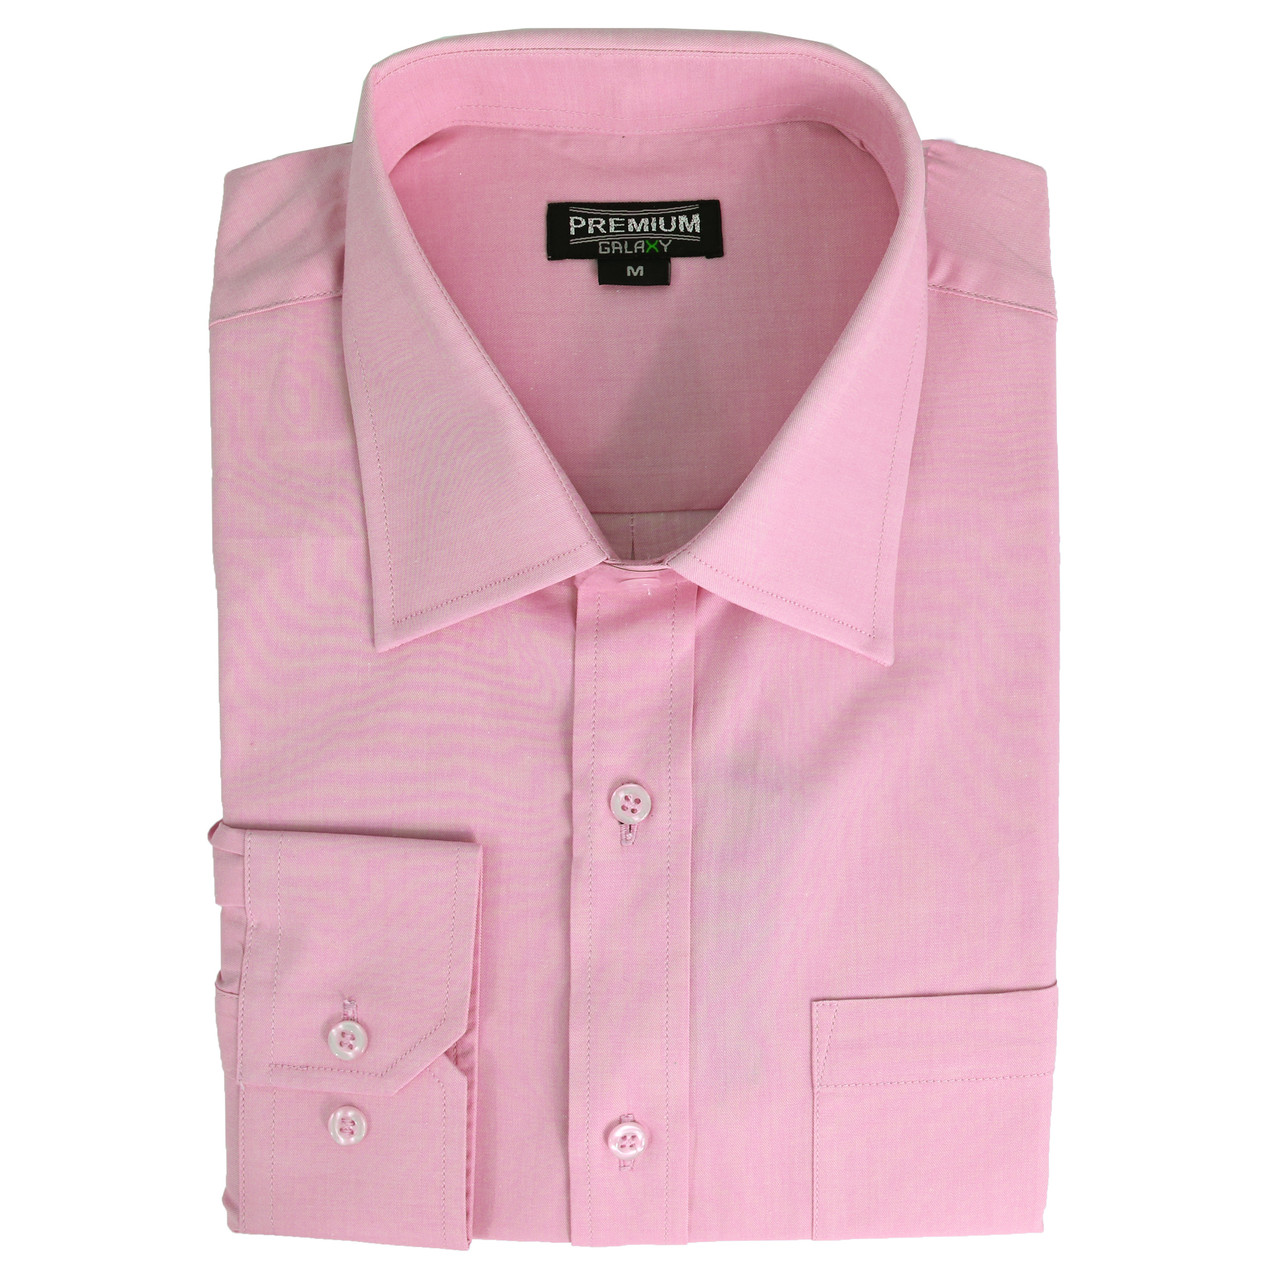 Men's Solid or Striped Long Sleeve Dress Shirt